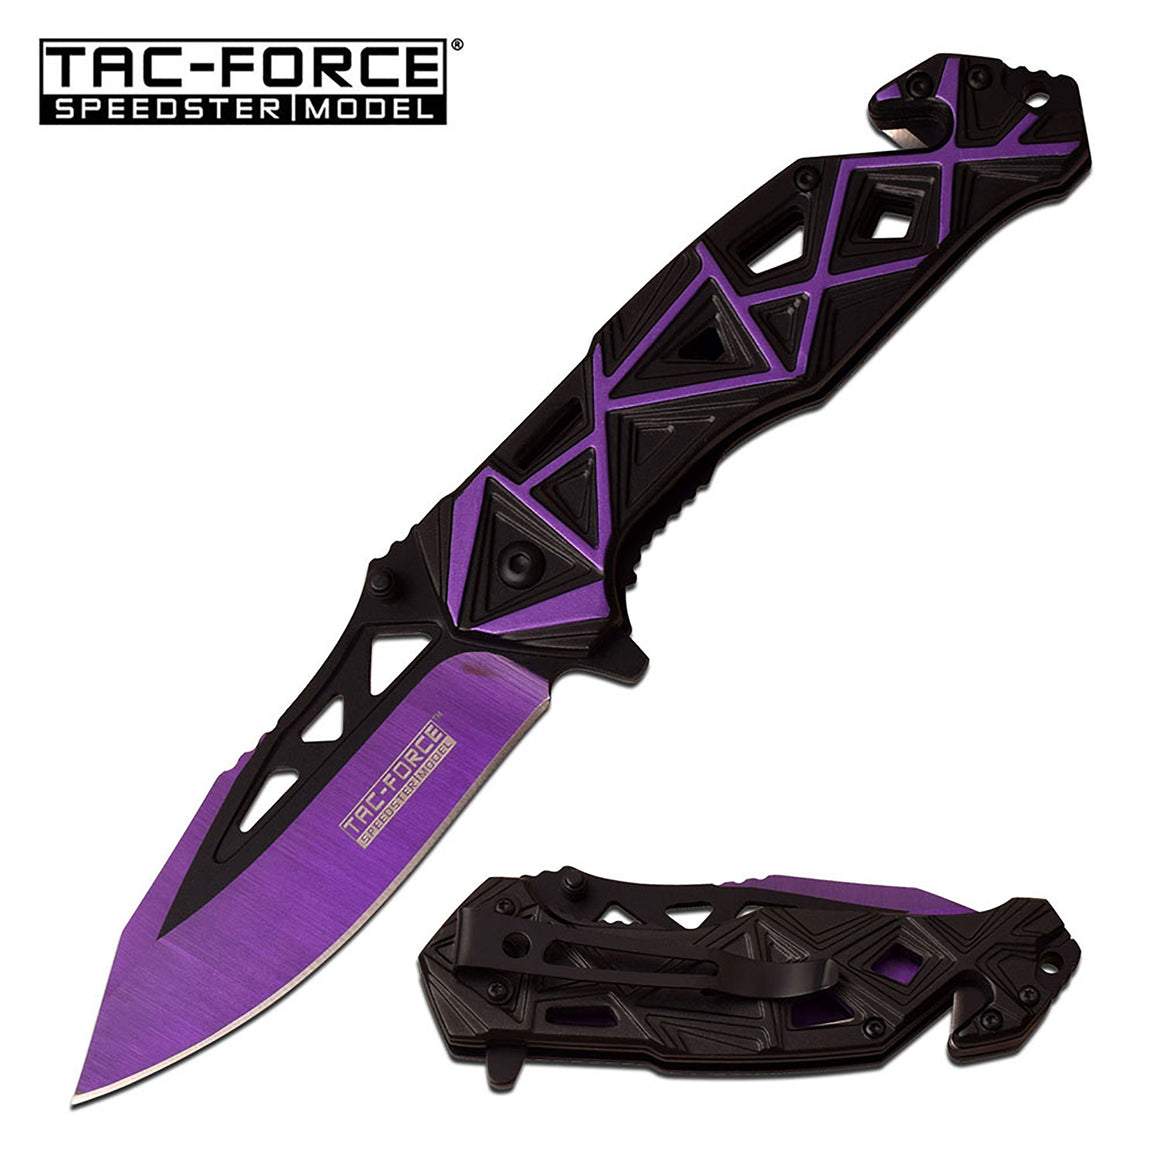 Tac-Force TF-940BP Spring Assisted Knife